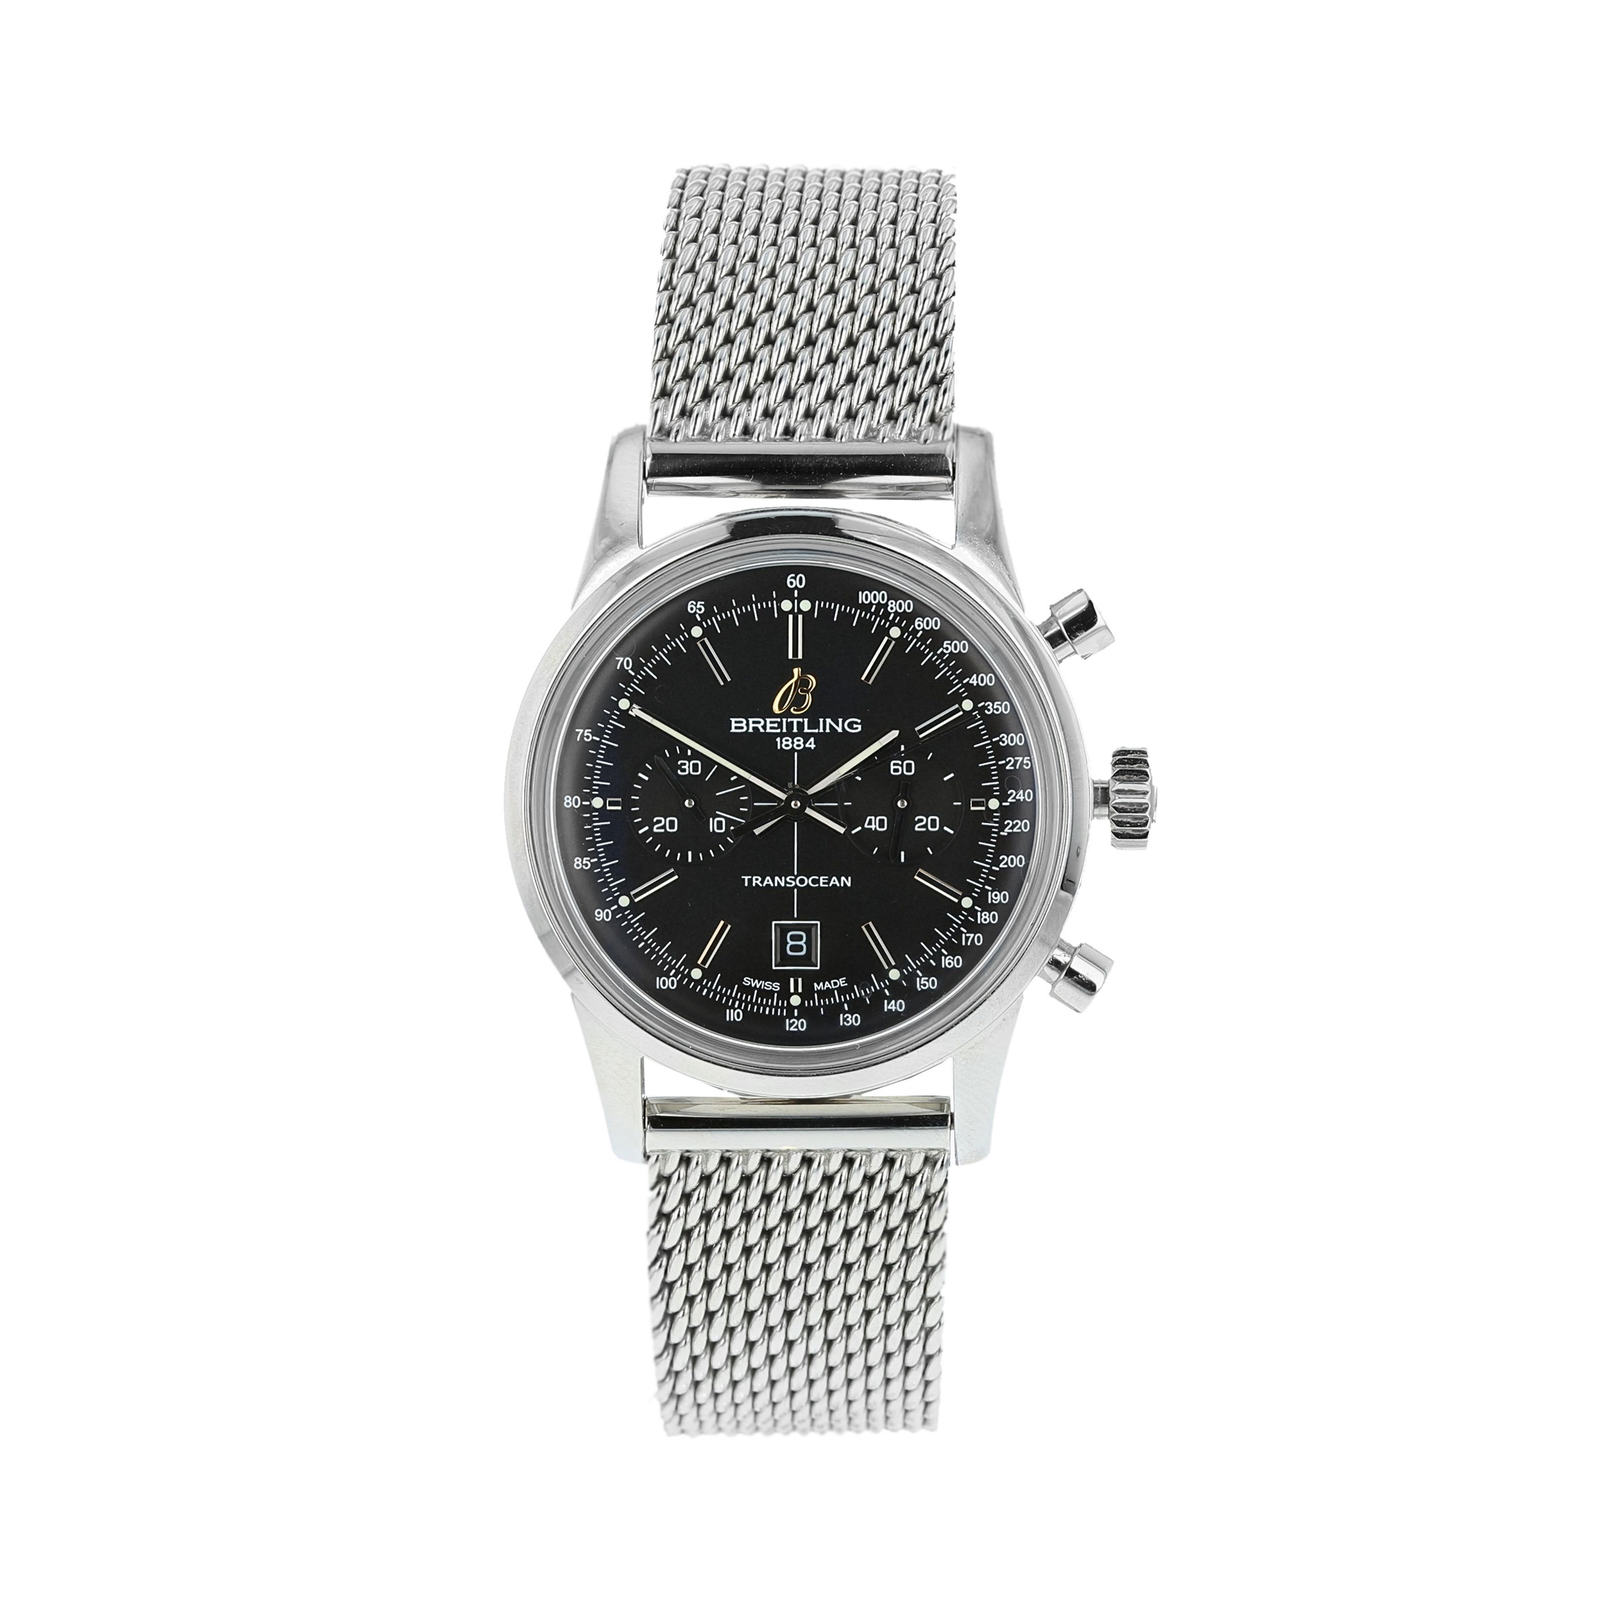 Pre-Owned Breitling Transocean Men's Watch